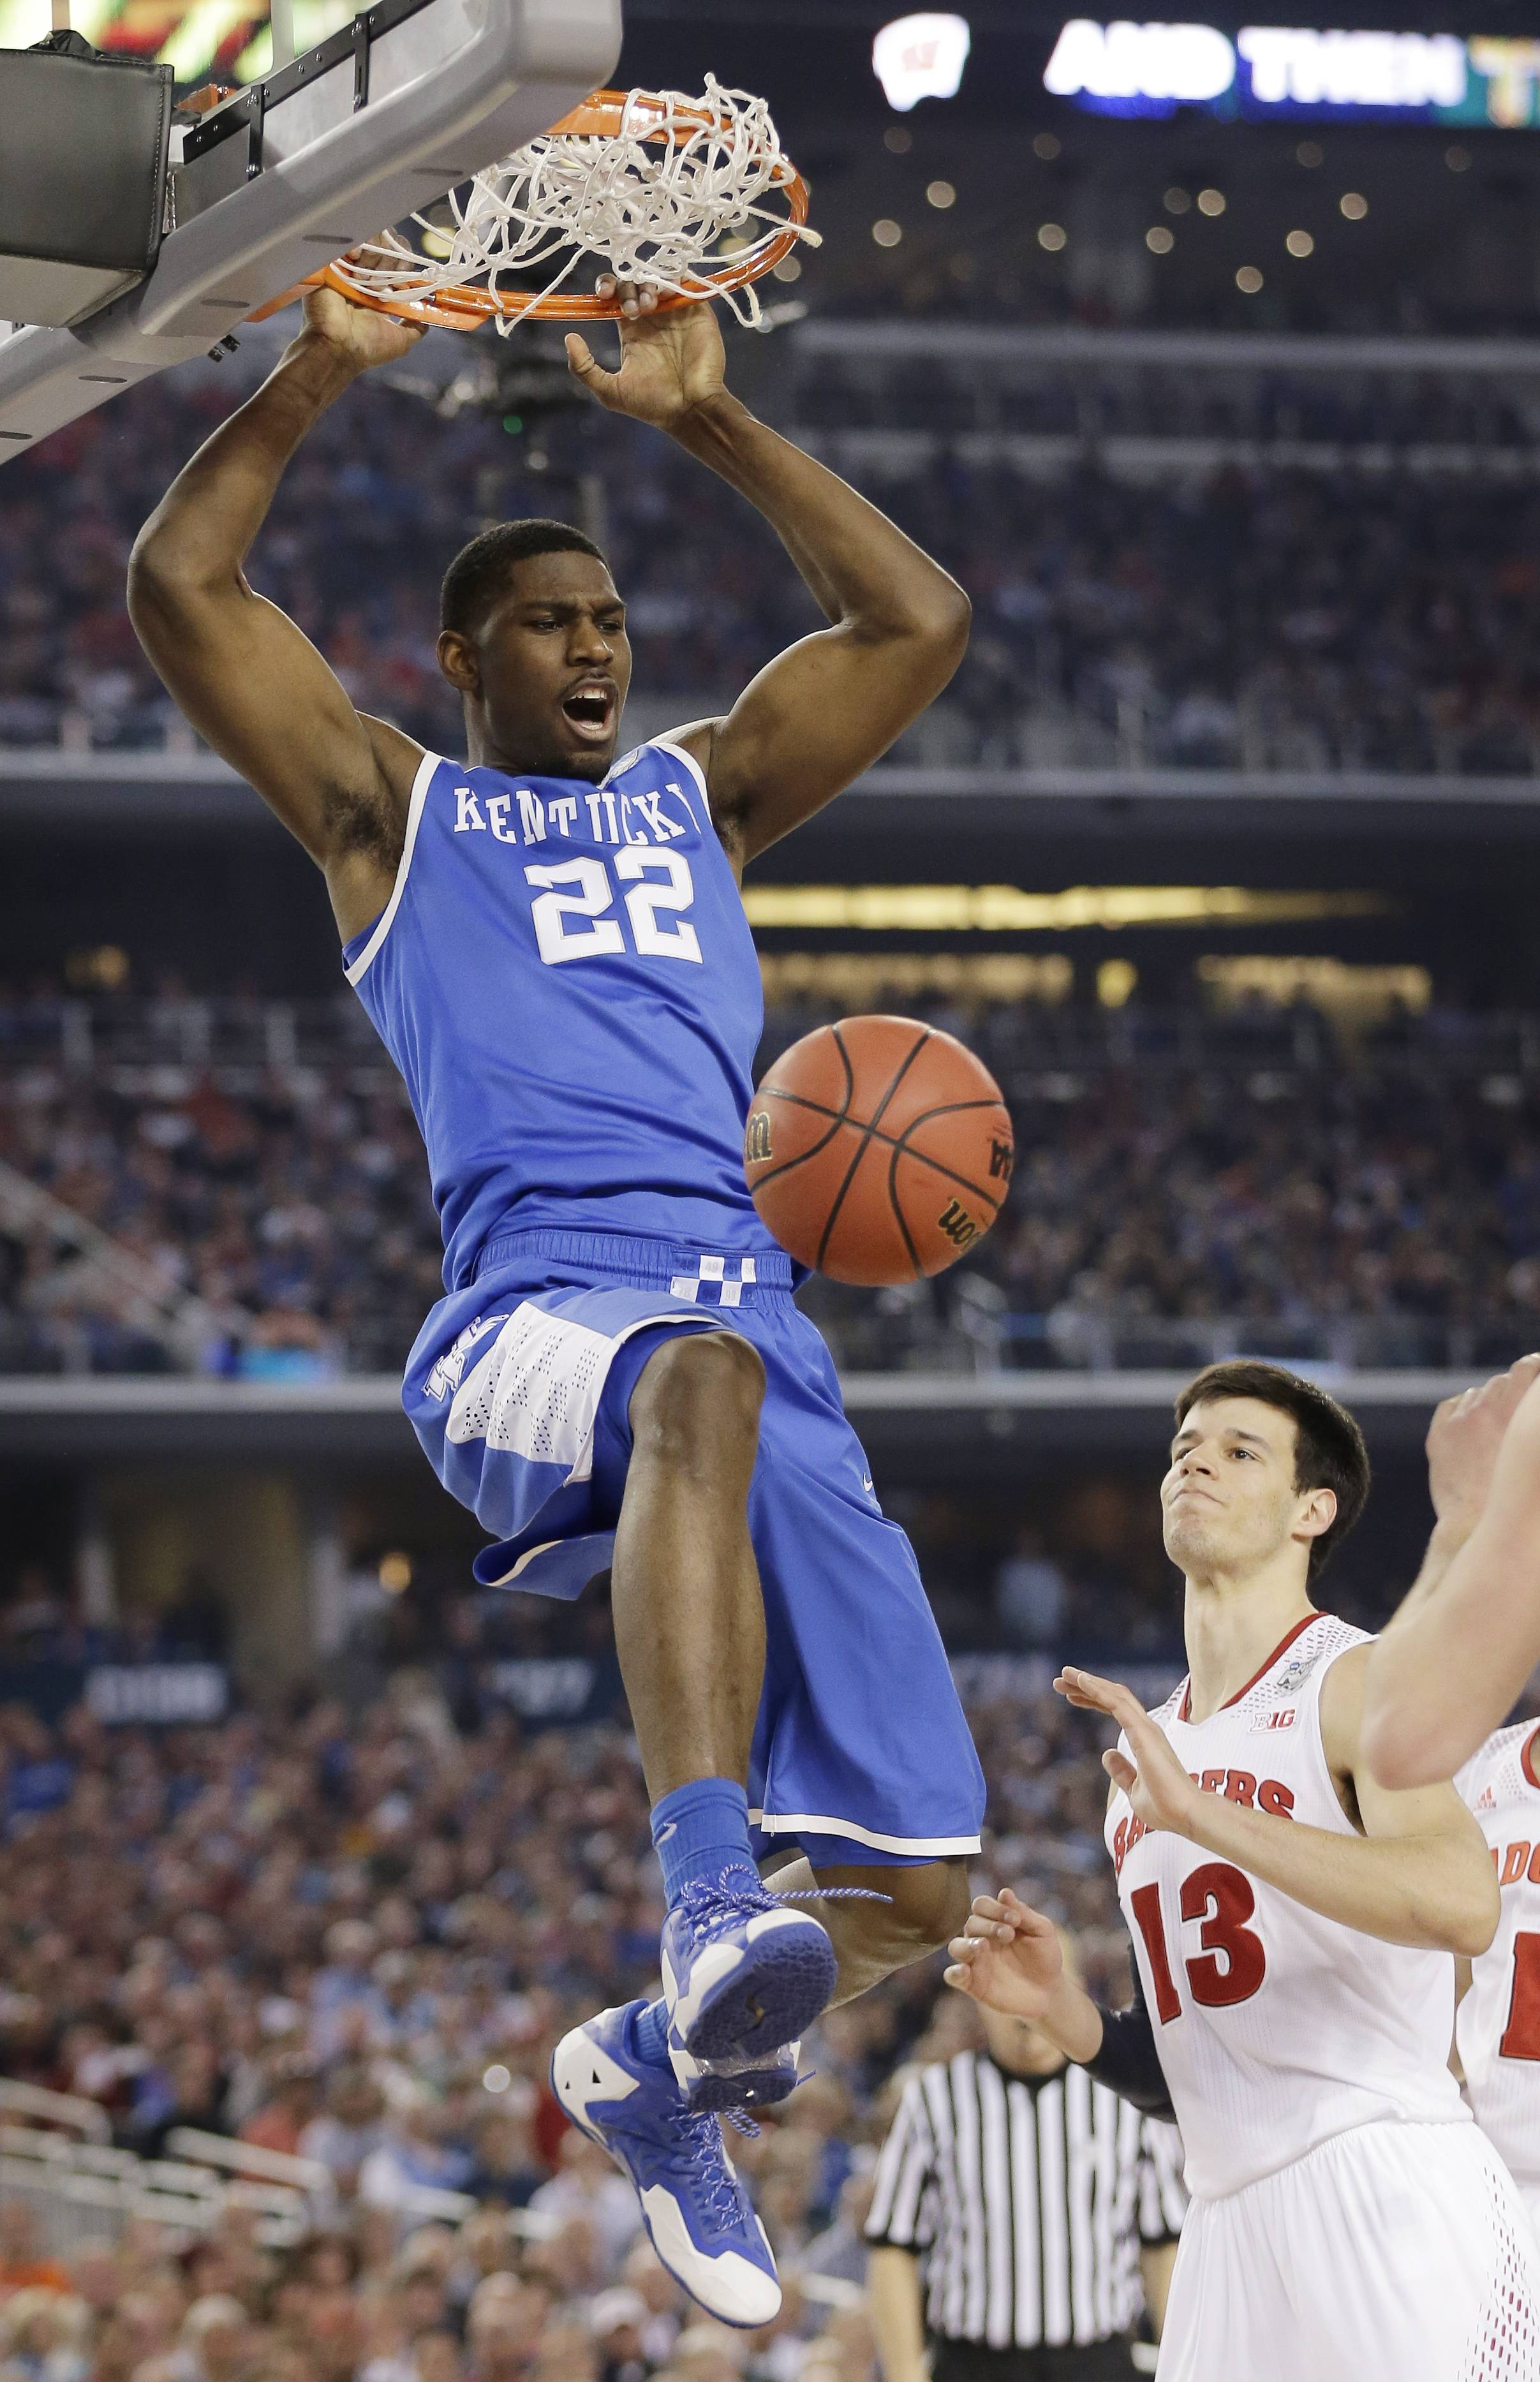 Kentucky forward Alex Poythress dunks the ball over Wisconsin forward Duje Dukan (13) during the first half of an NCAA Final Four tournament college basketball semifinal game Saturday, April 5, 2014, in Arlington, Texas.